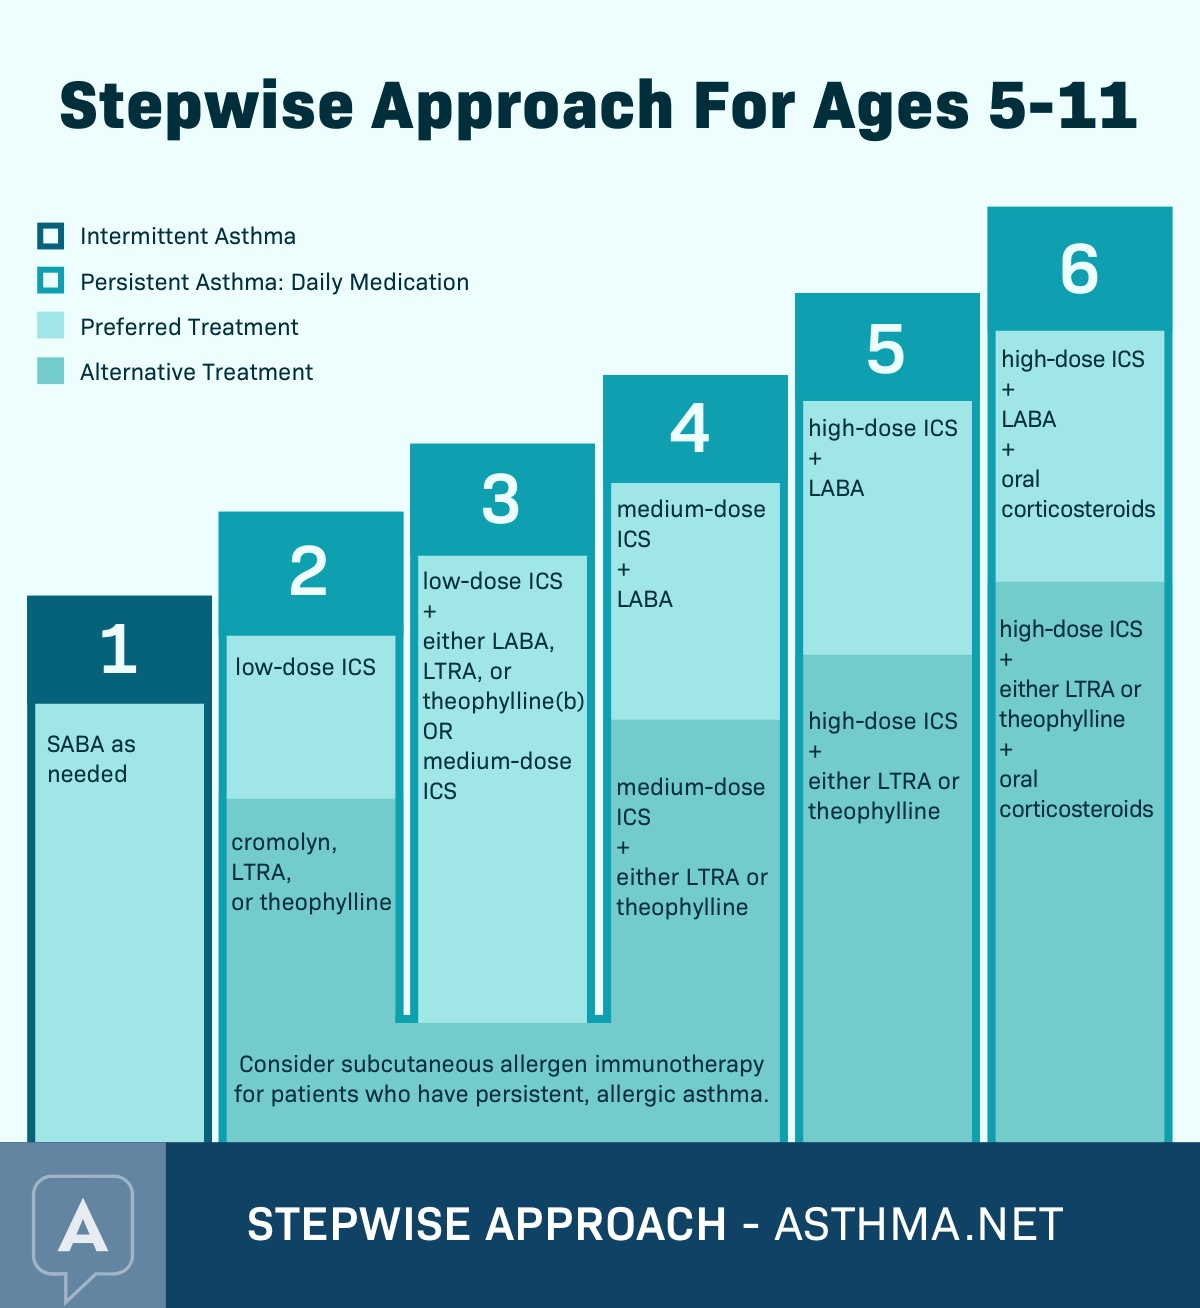 Stepwise Approach For Ages 5-11